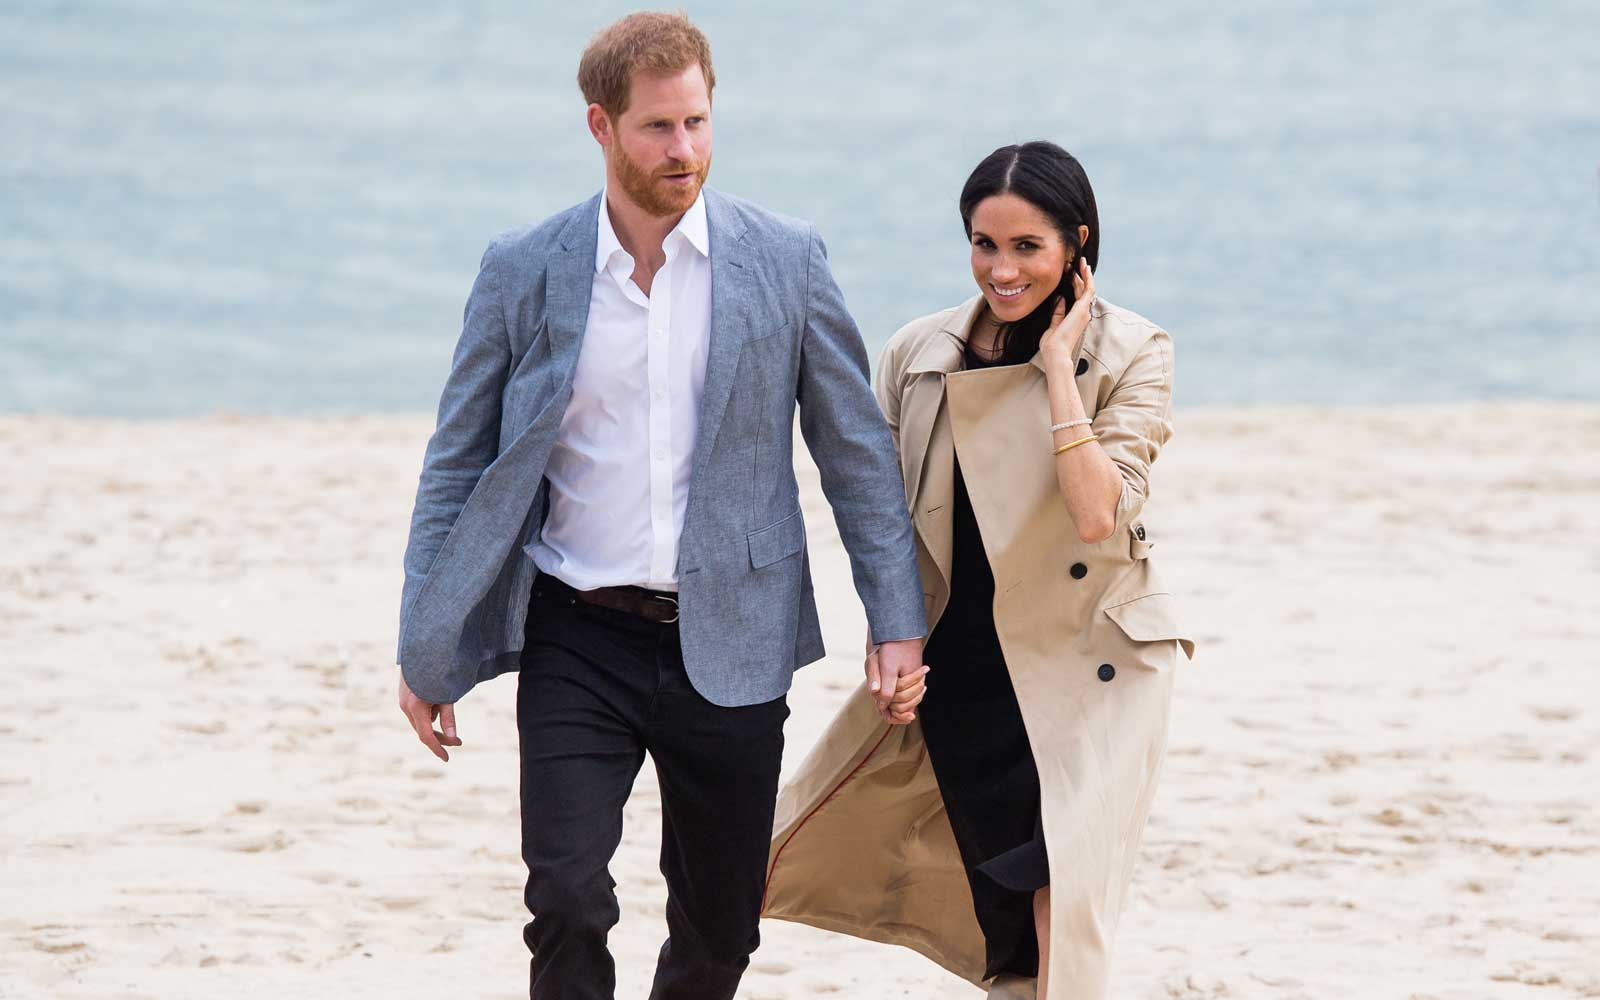 Prince Harry and Duchess Meghan of Sussex in Australia